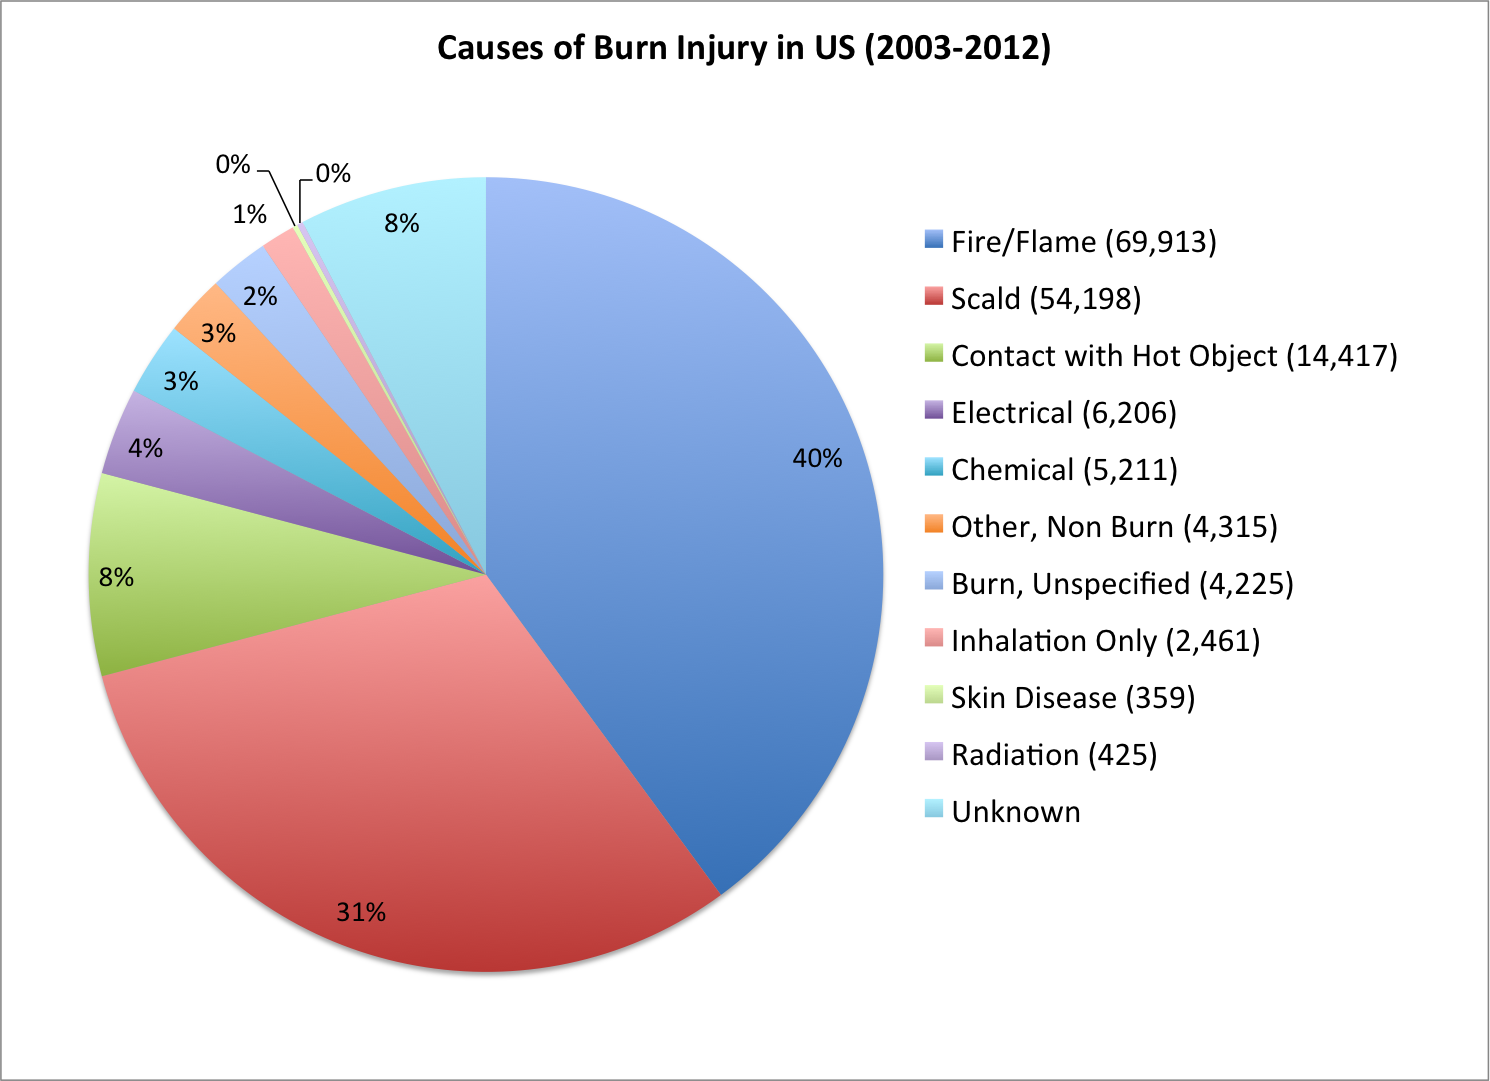 pie chart of burn injury causes in US